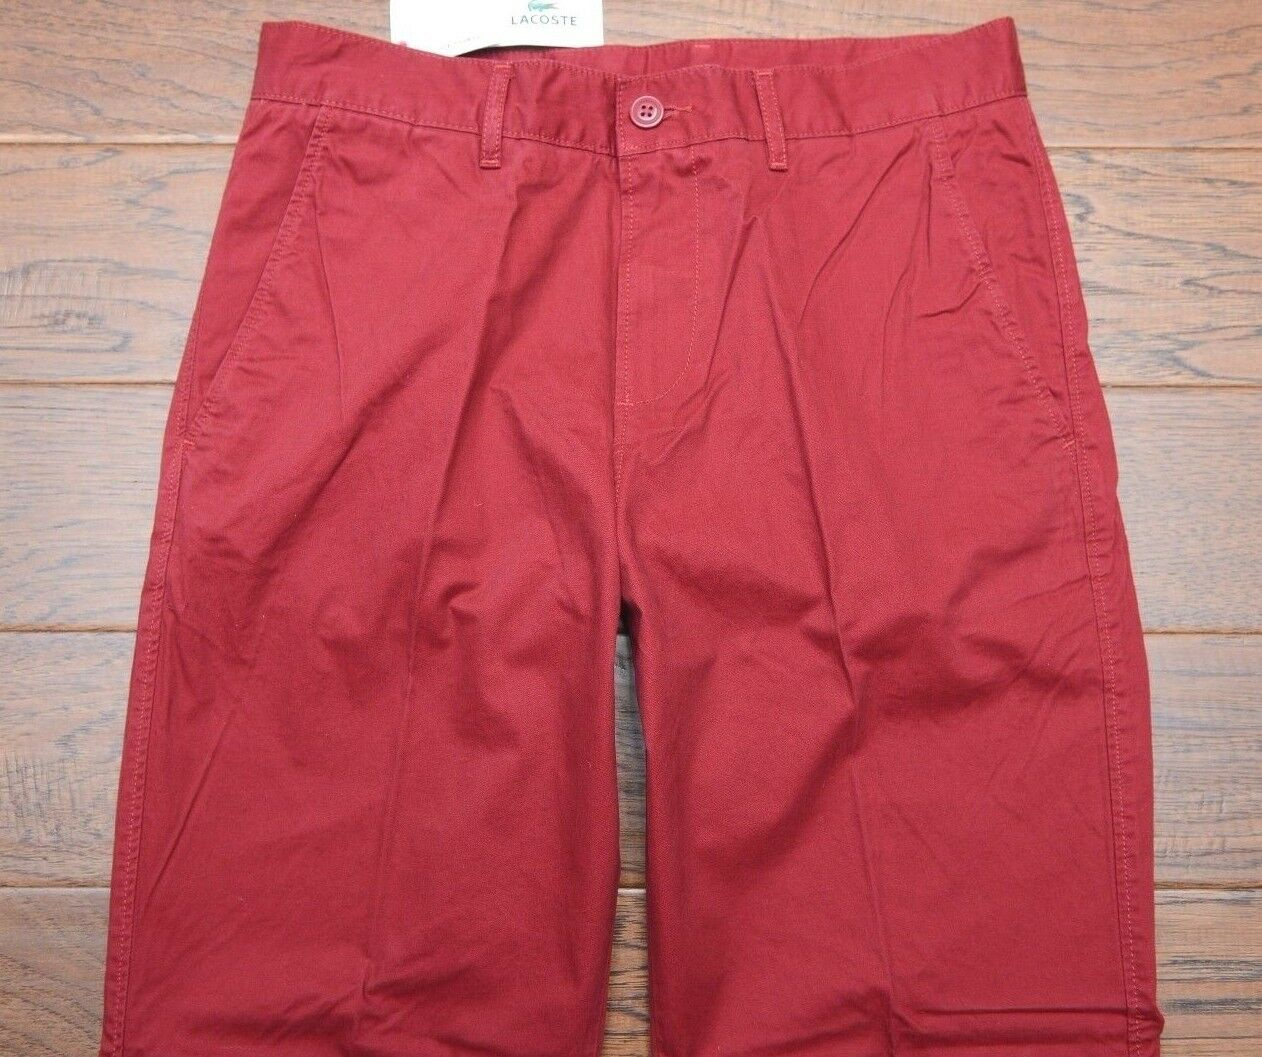 Lacoste Men's Classic Fit Andrinople Red Cotton Casual Pants W32 L30